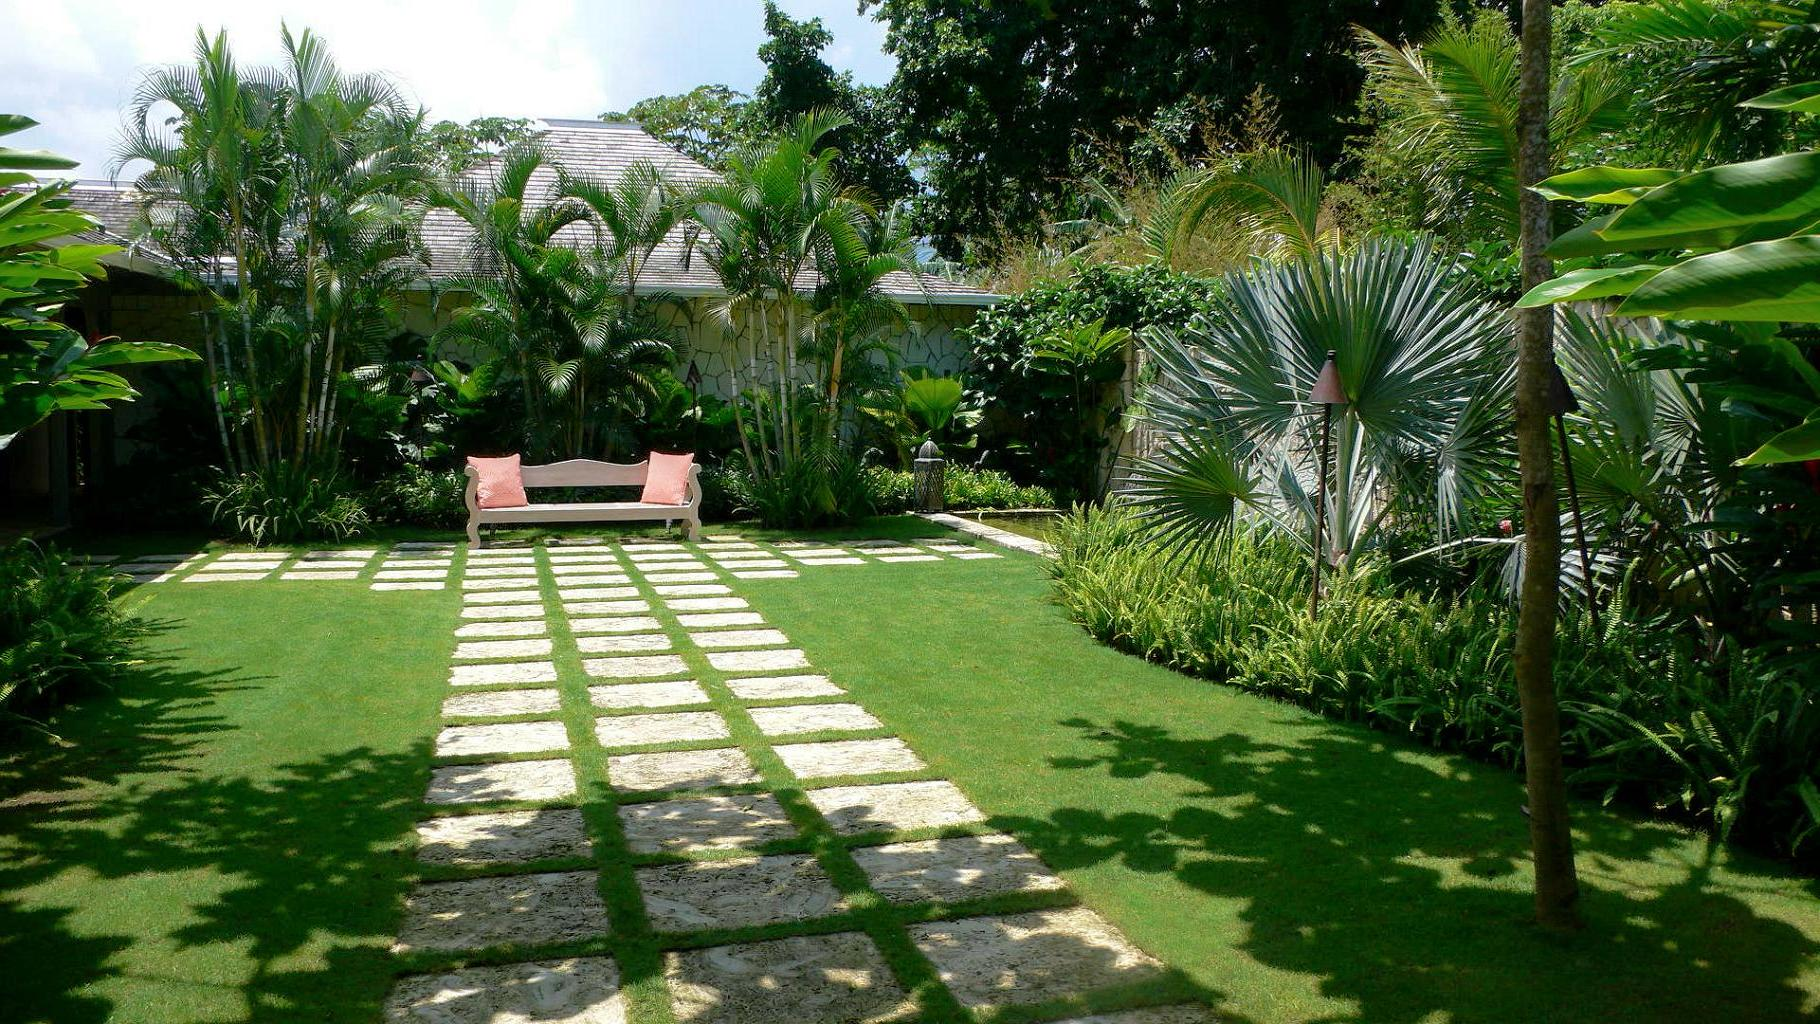 Tropical garden design landscaping in brisbane for Great landscaping ideas backyard